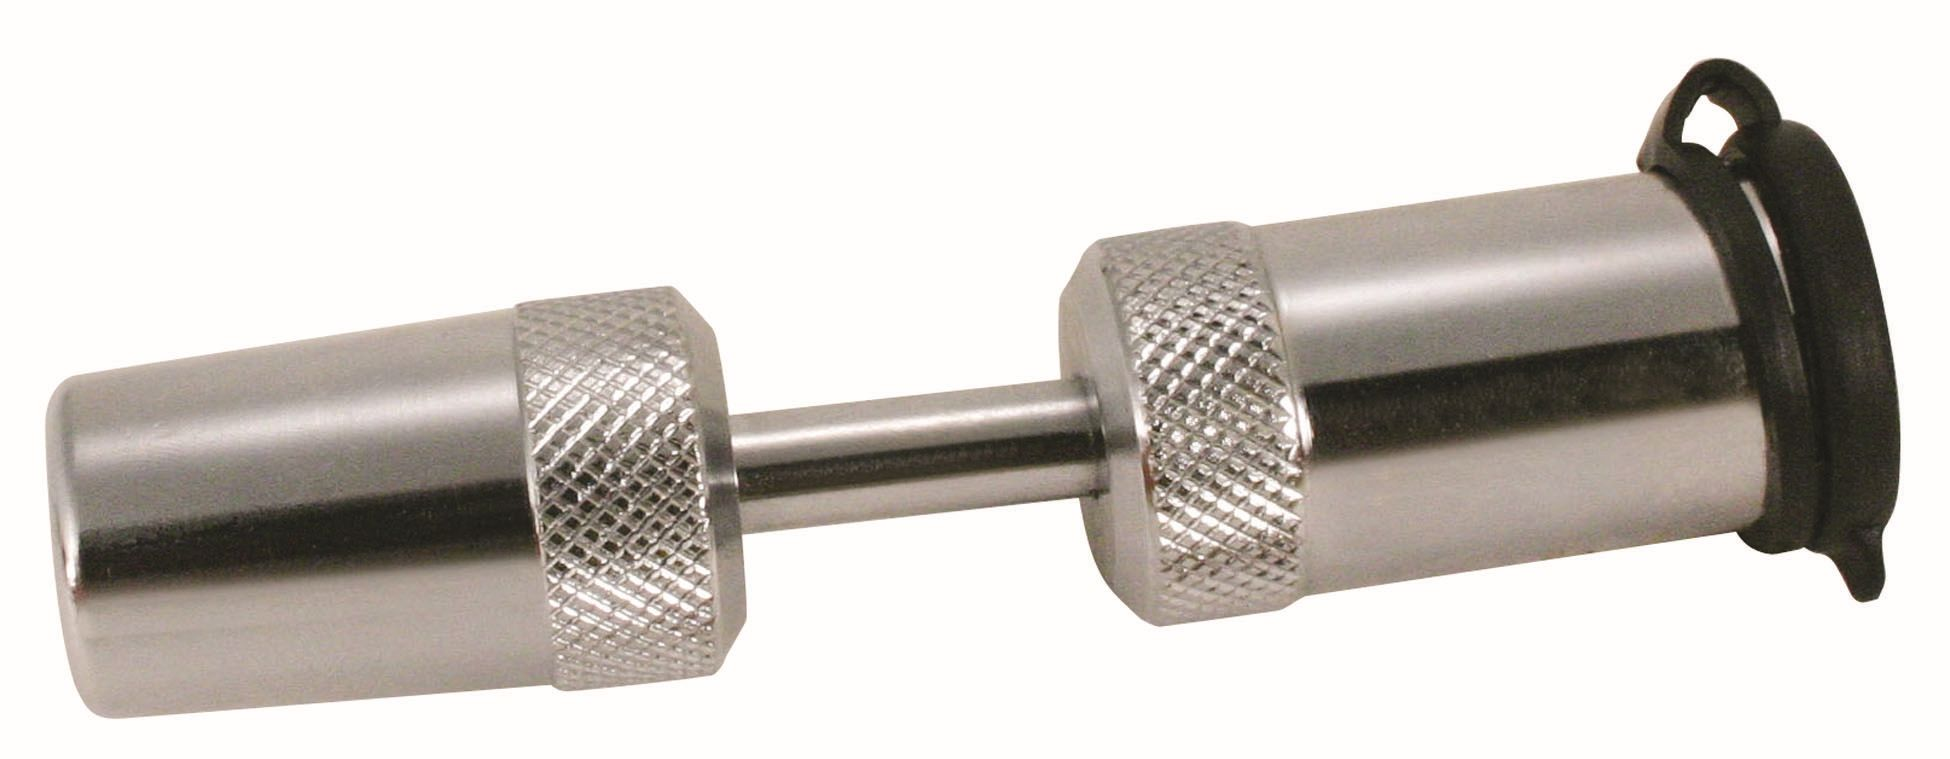 TC1 Trimax Locks Trailer Coupler Lock Barbell Type